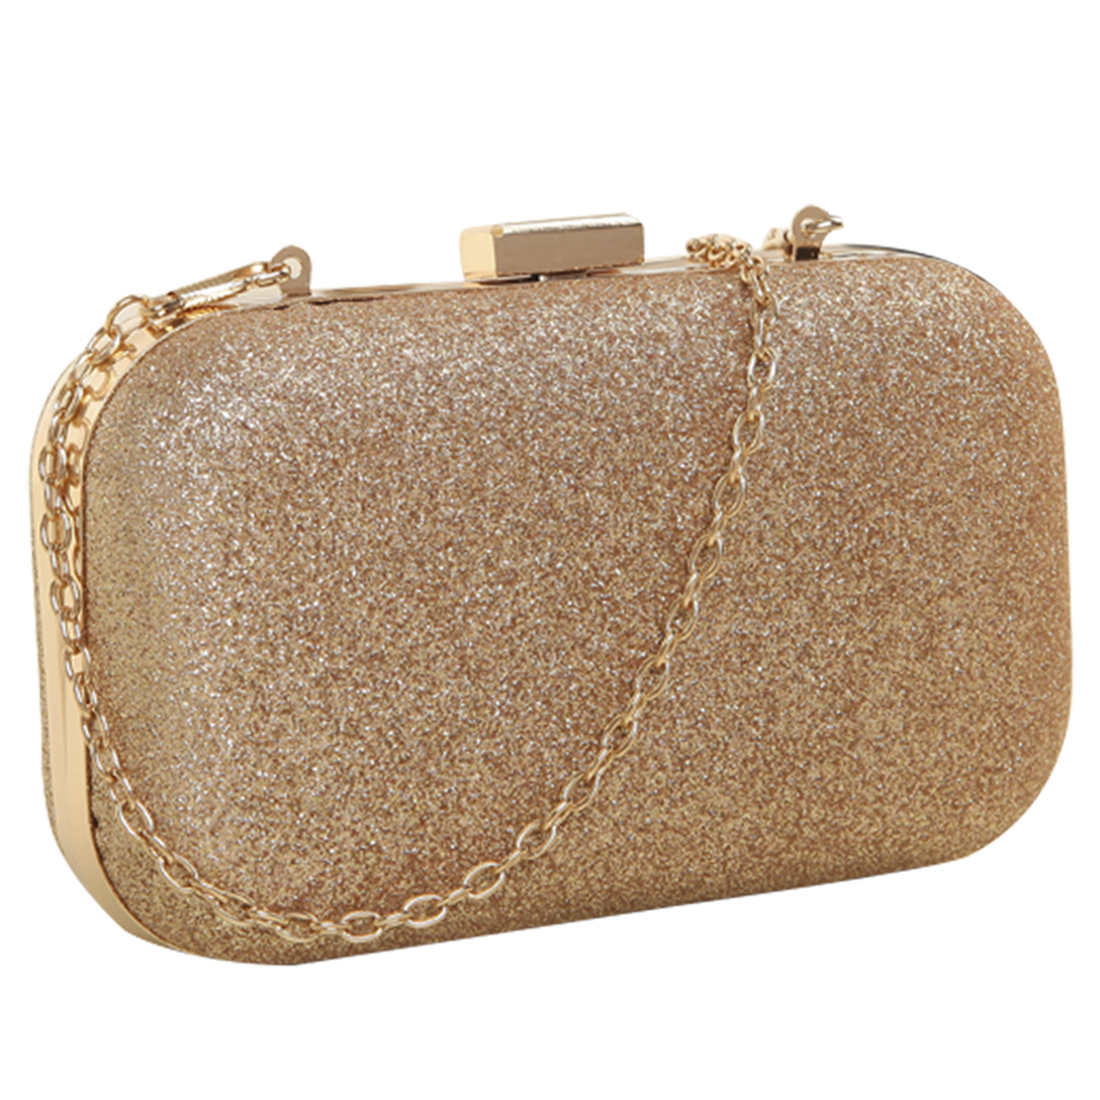 Mini small chain women ladies female gold silver evening clutch bags designer leather handbags Wedding Purse Party Banquet girls diamonds women evening bags chain shoulder purse handbags one side rhinestones evening clutch bags wedding party purse